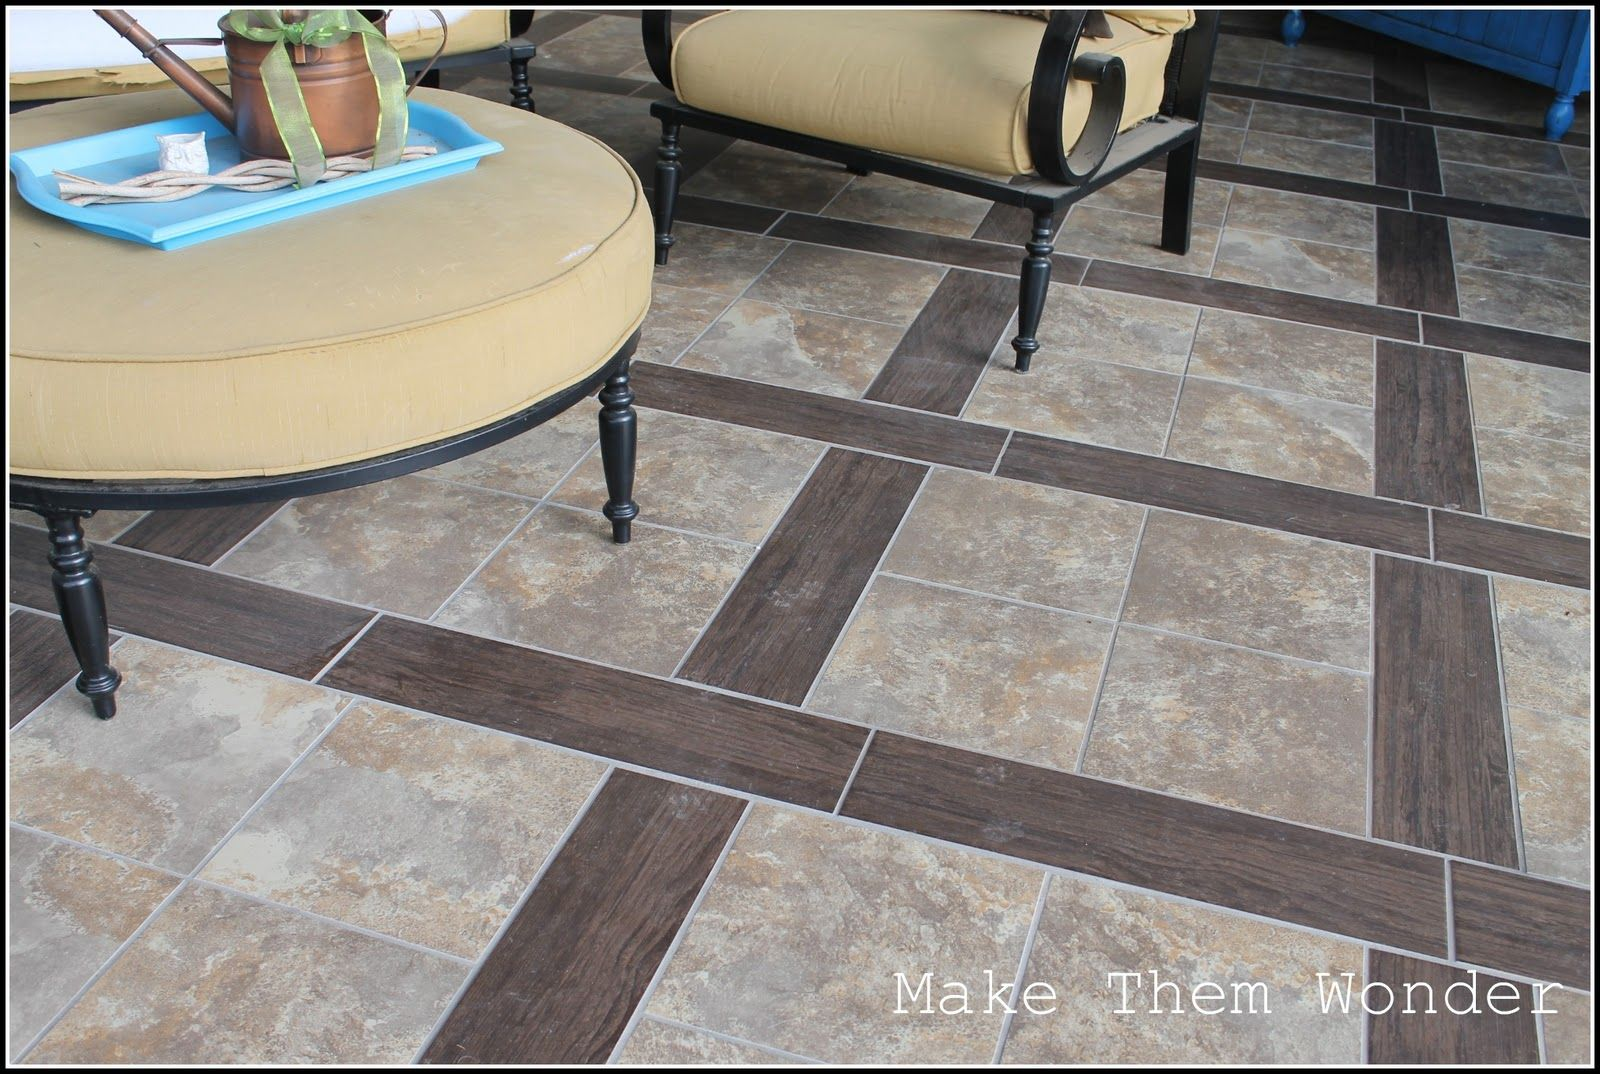 Patio design with stamped concrete tile that looks like wood patio design with stamped concrete tile that looks like wood dailygadgetfo Gallery